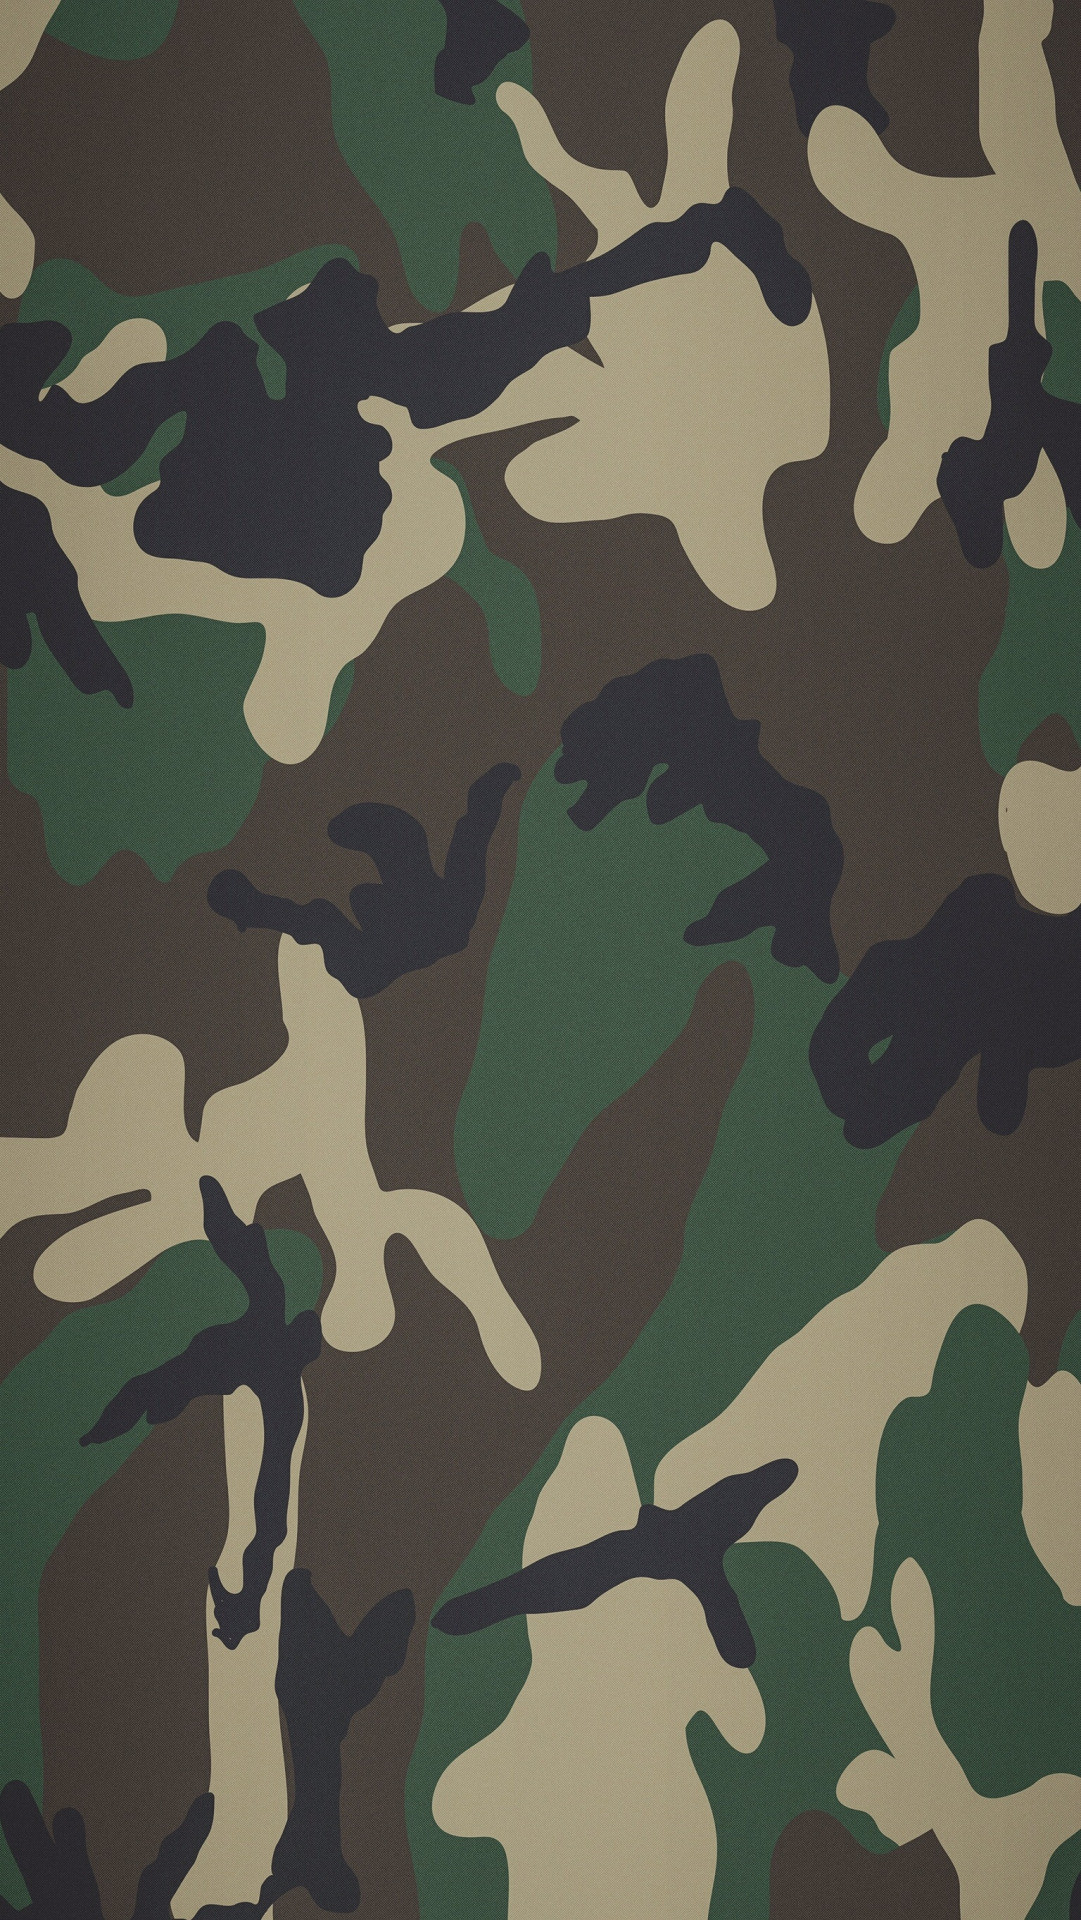 1081x1920 Camo Wallpapers Android Apps on Google Play | HD Wallpapers | Pinterest | Camouflage  wallpaper, Wallpaper and Wallpapers android